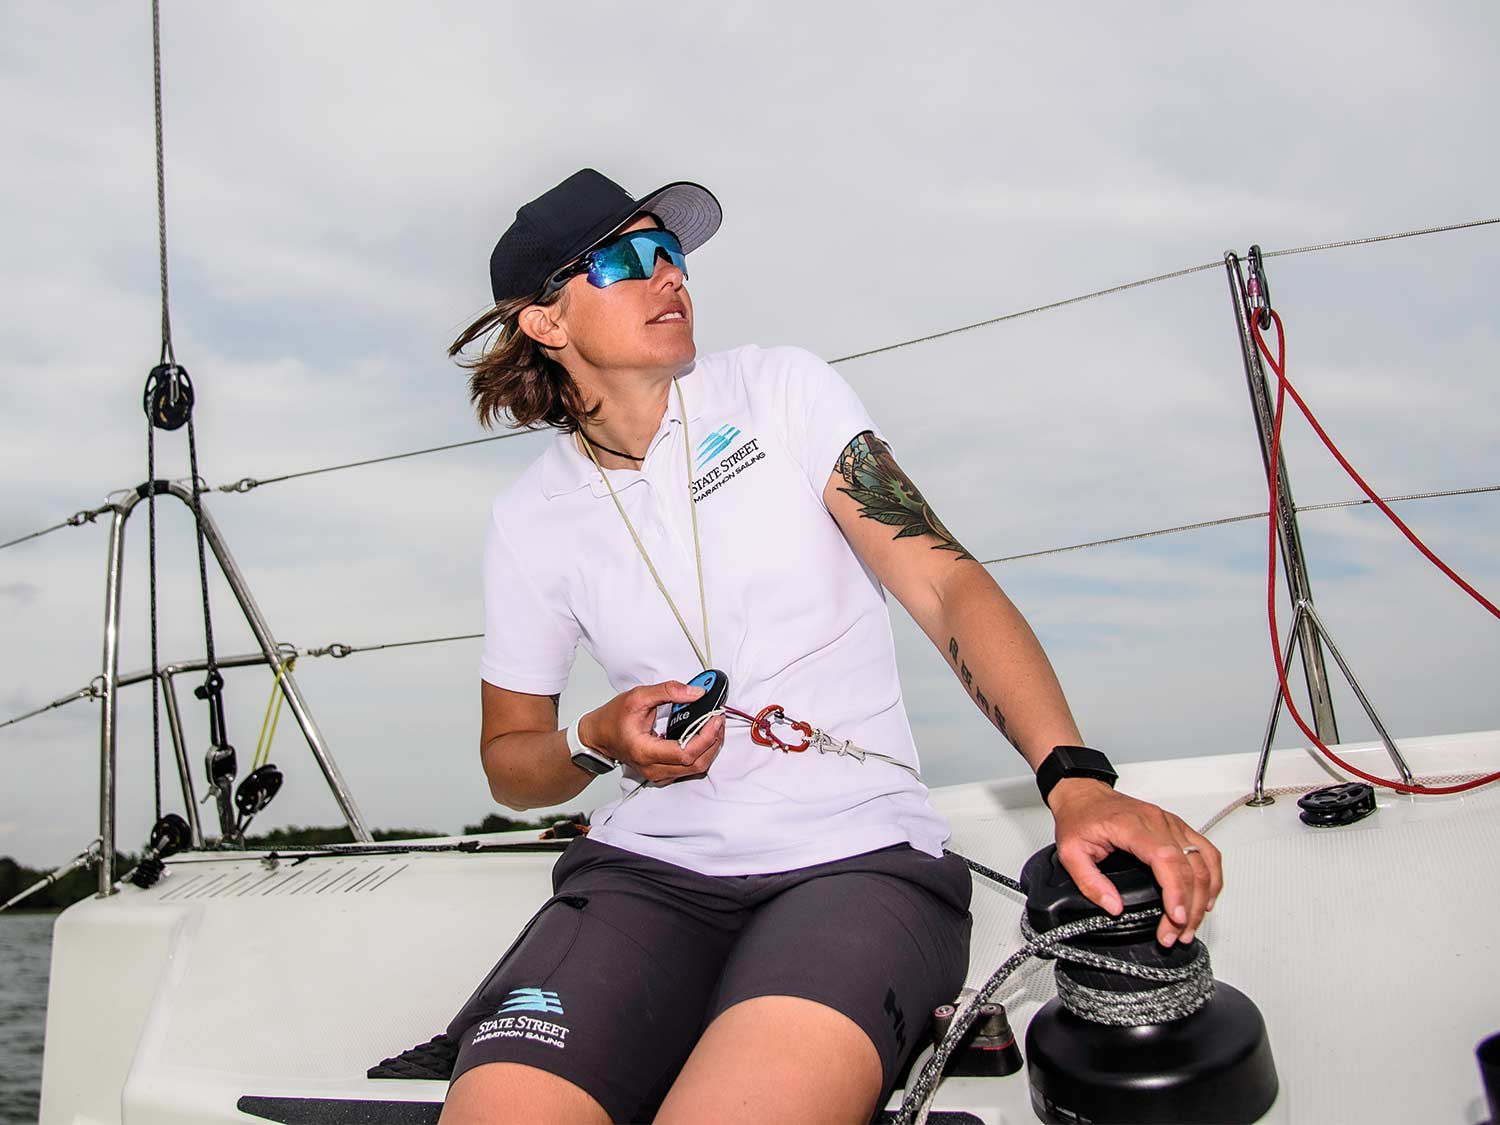 With autopilot remote at the ready, Francesca Clapcich can helm the Figaro Beneteau 3 from anywhere on the boat.